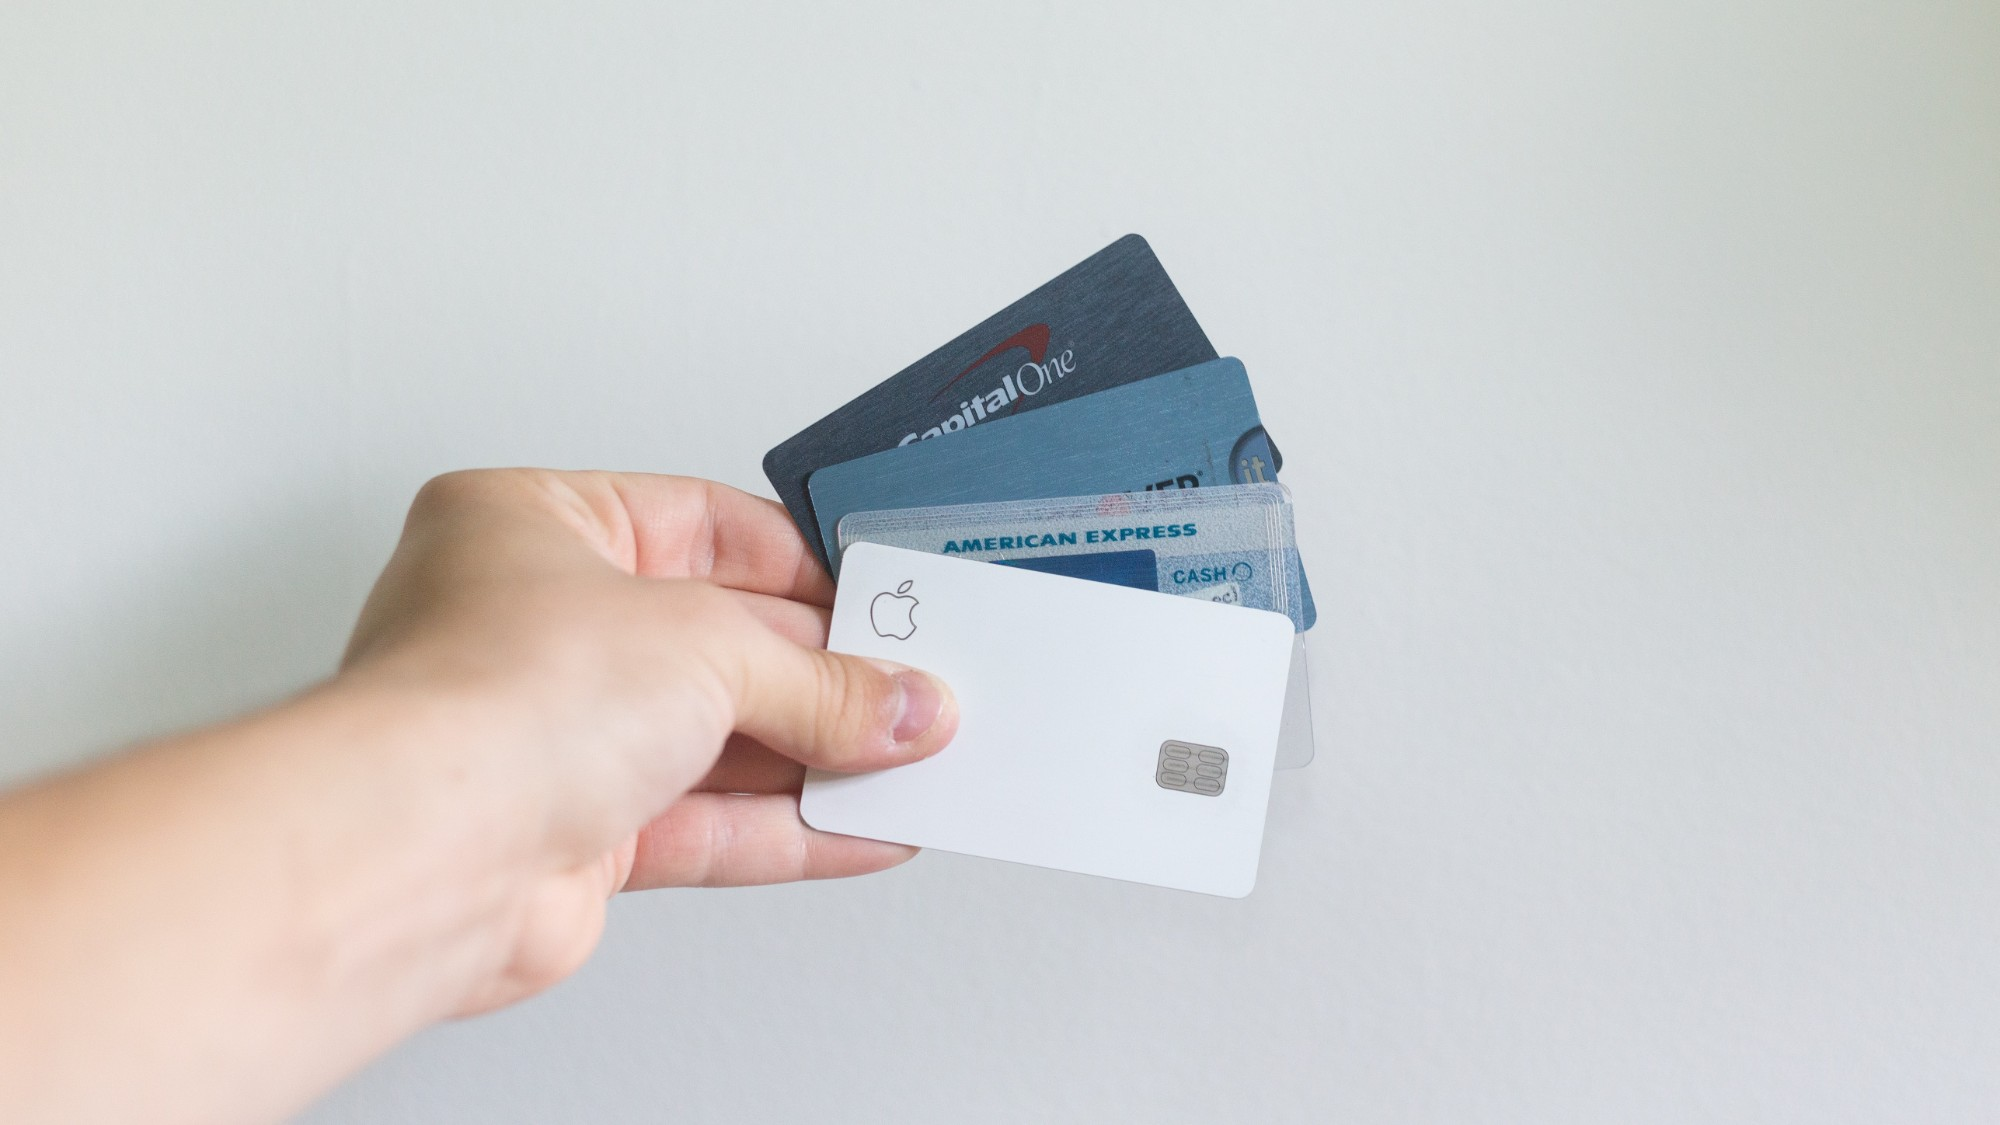 Hand holding multiple credit cards